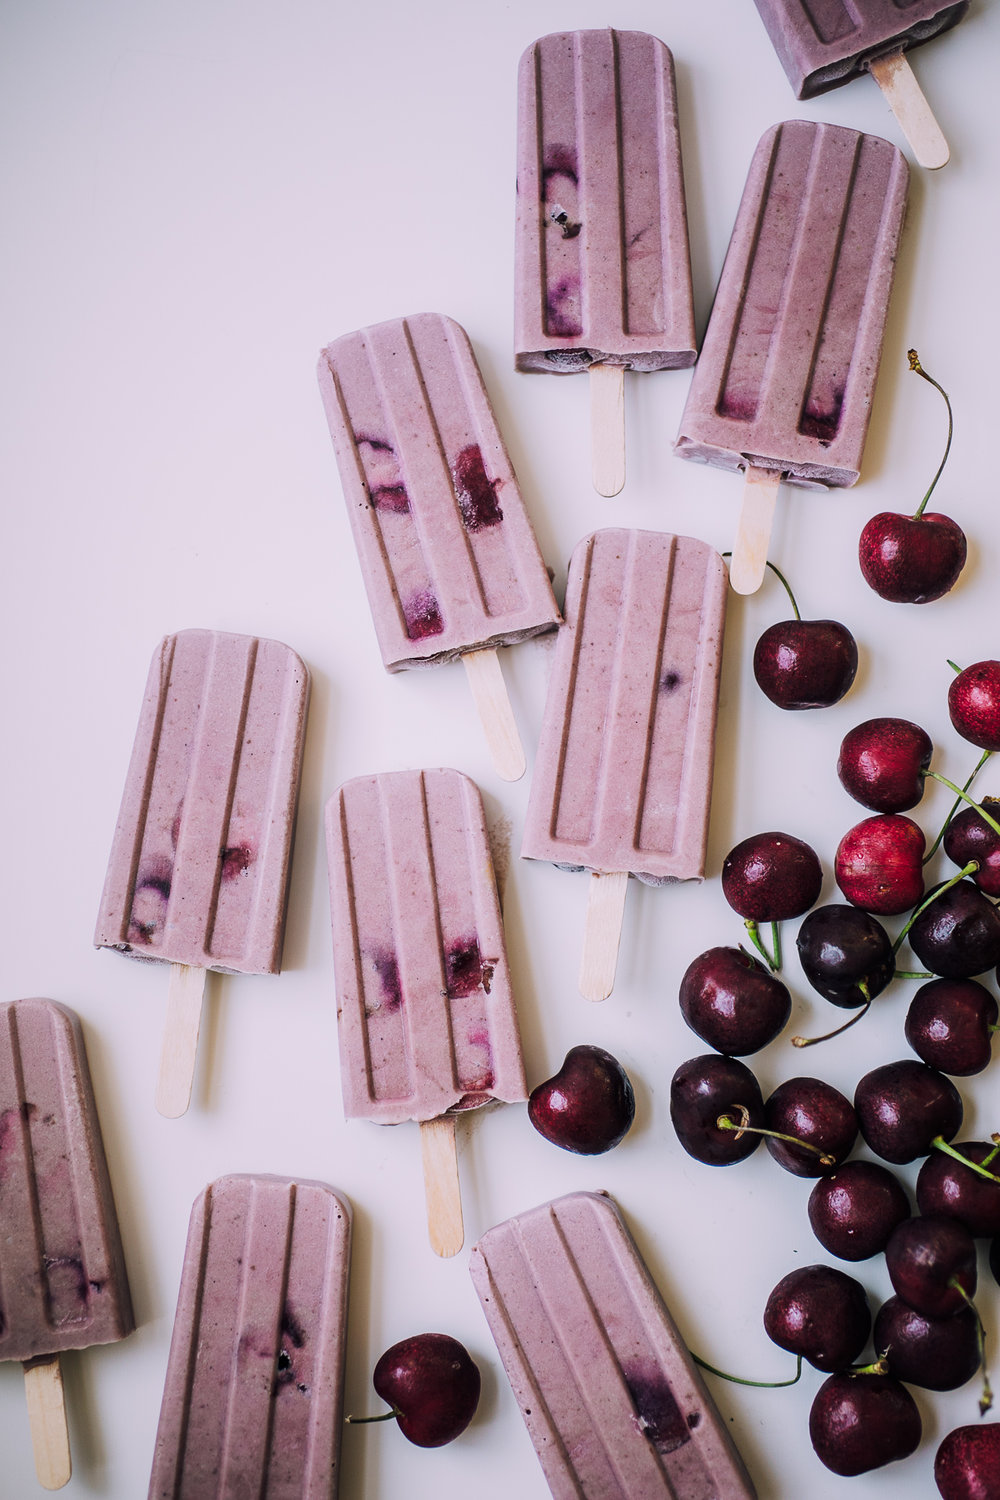 vegan-cherry-almond-popsicles-9175.jpg